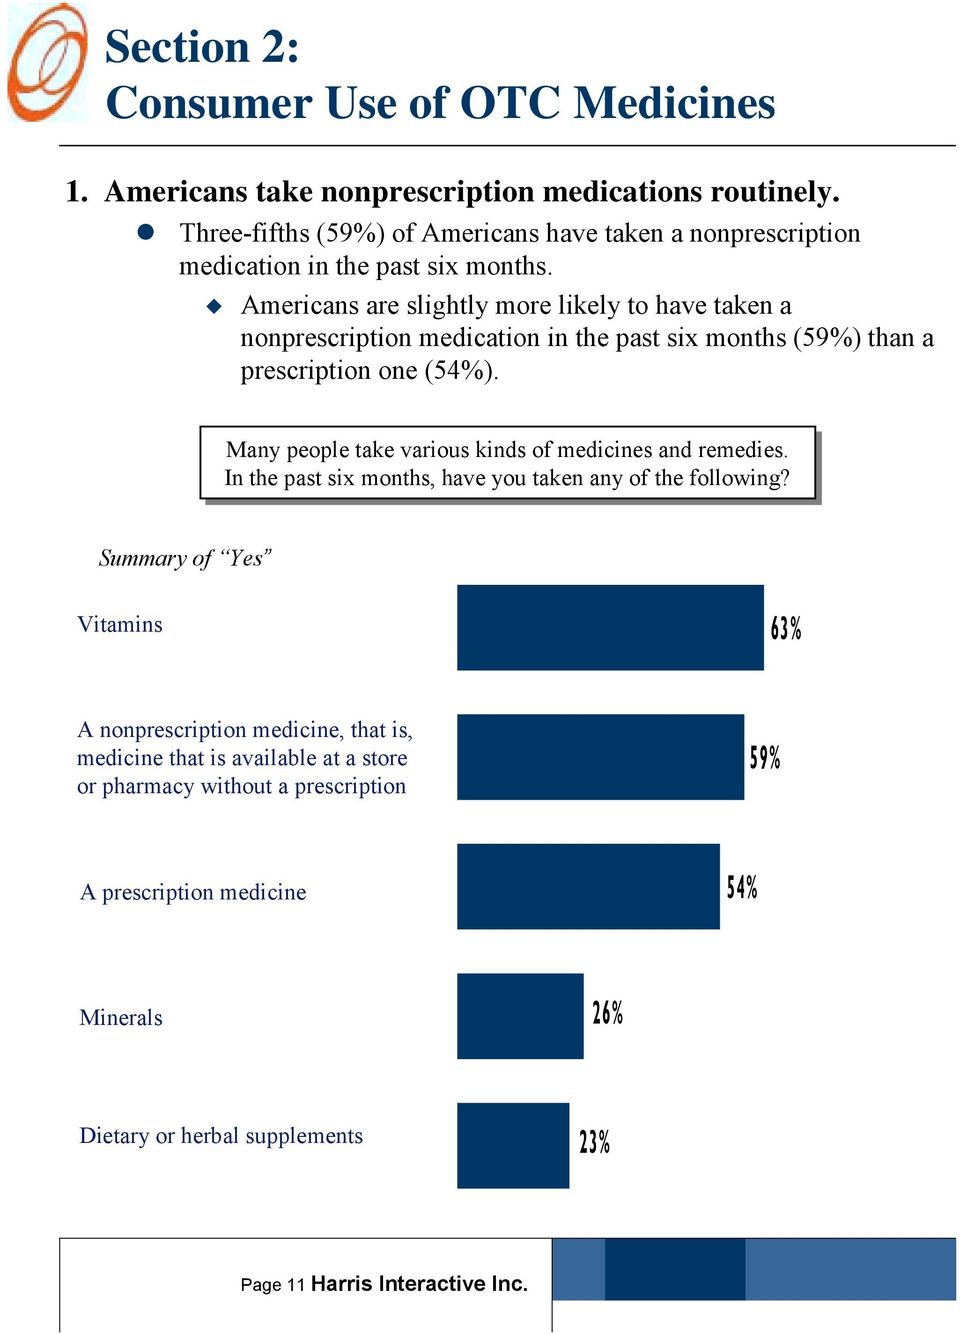 Americans are slightly more likely to have taken a nonprescription medication in the past six months (59%) than a prescription one (54%).